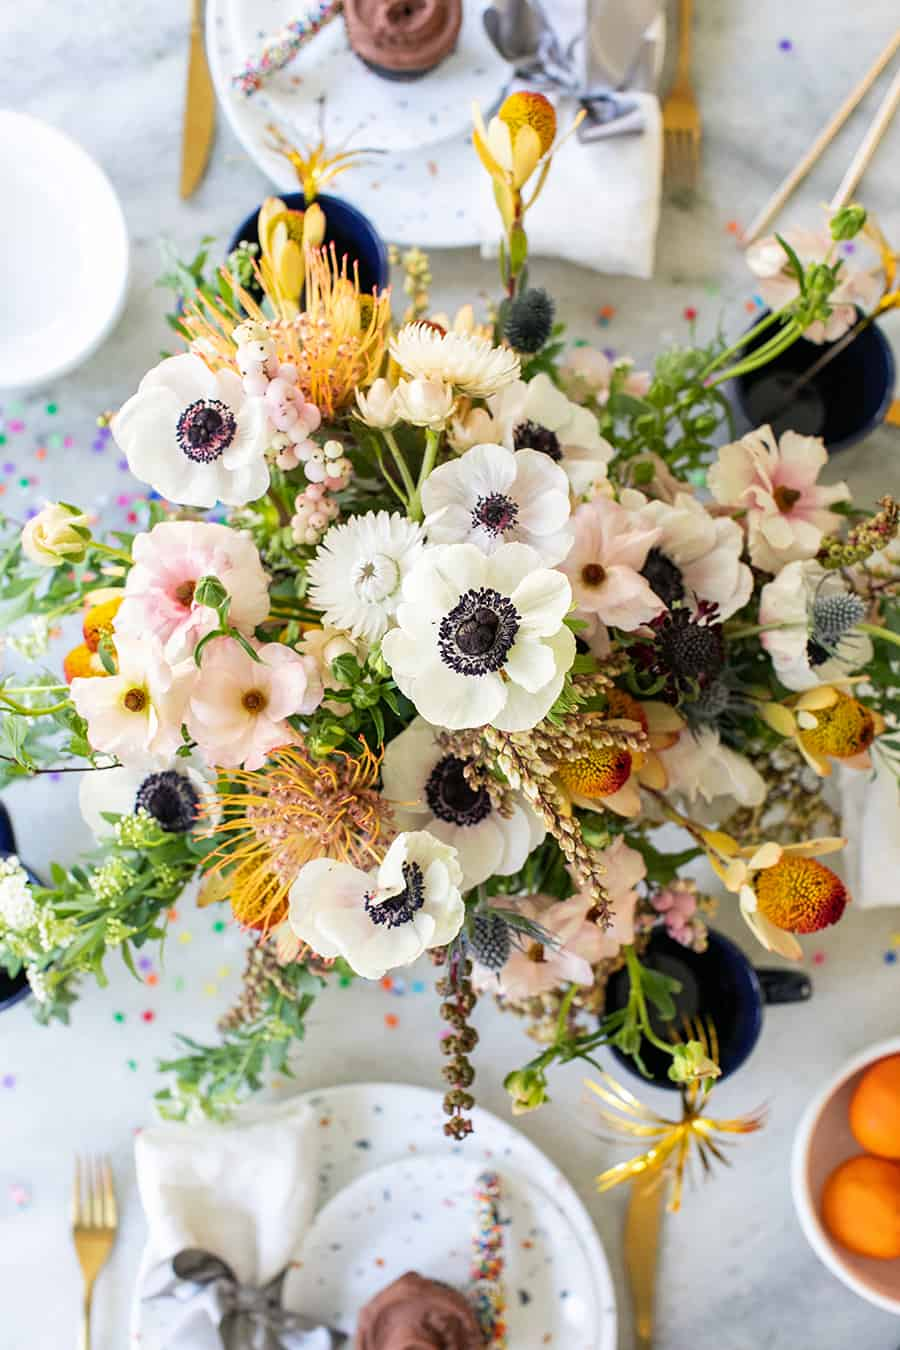 Beautiful floral arrangement on a marble table with plates and cupcakes.